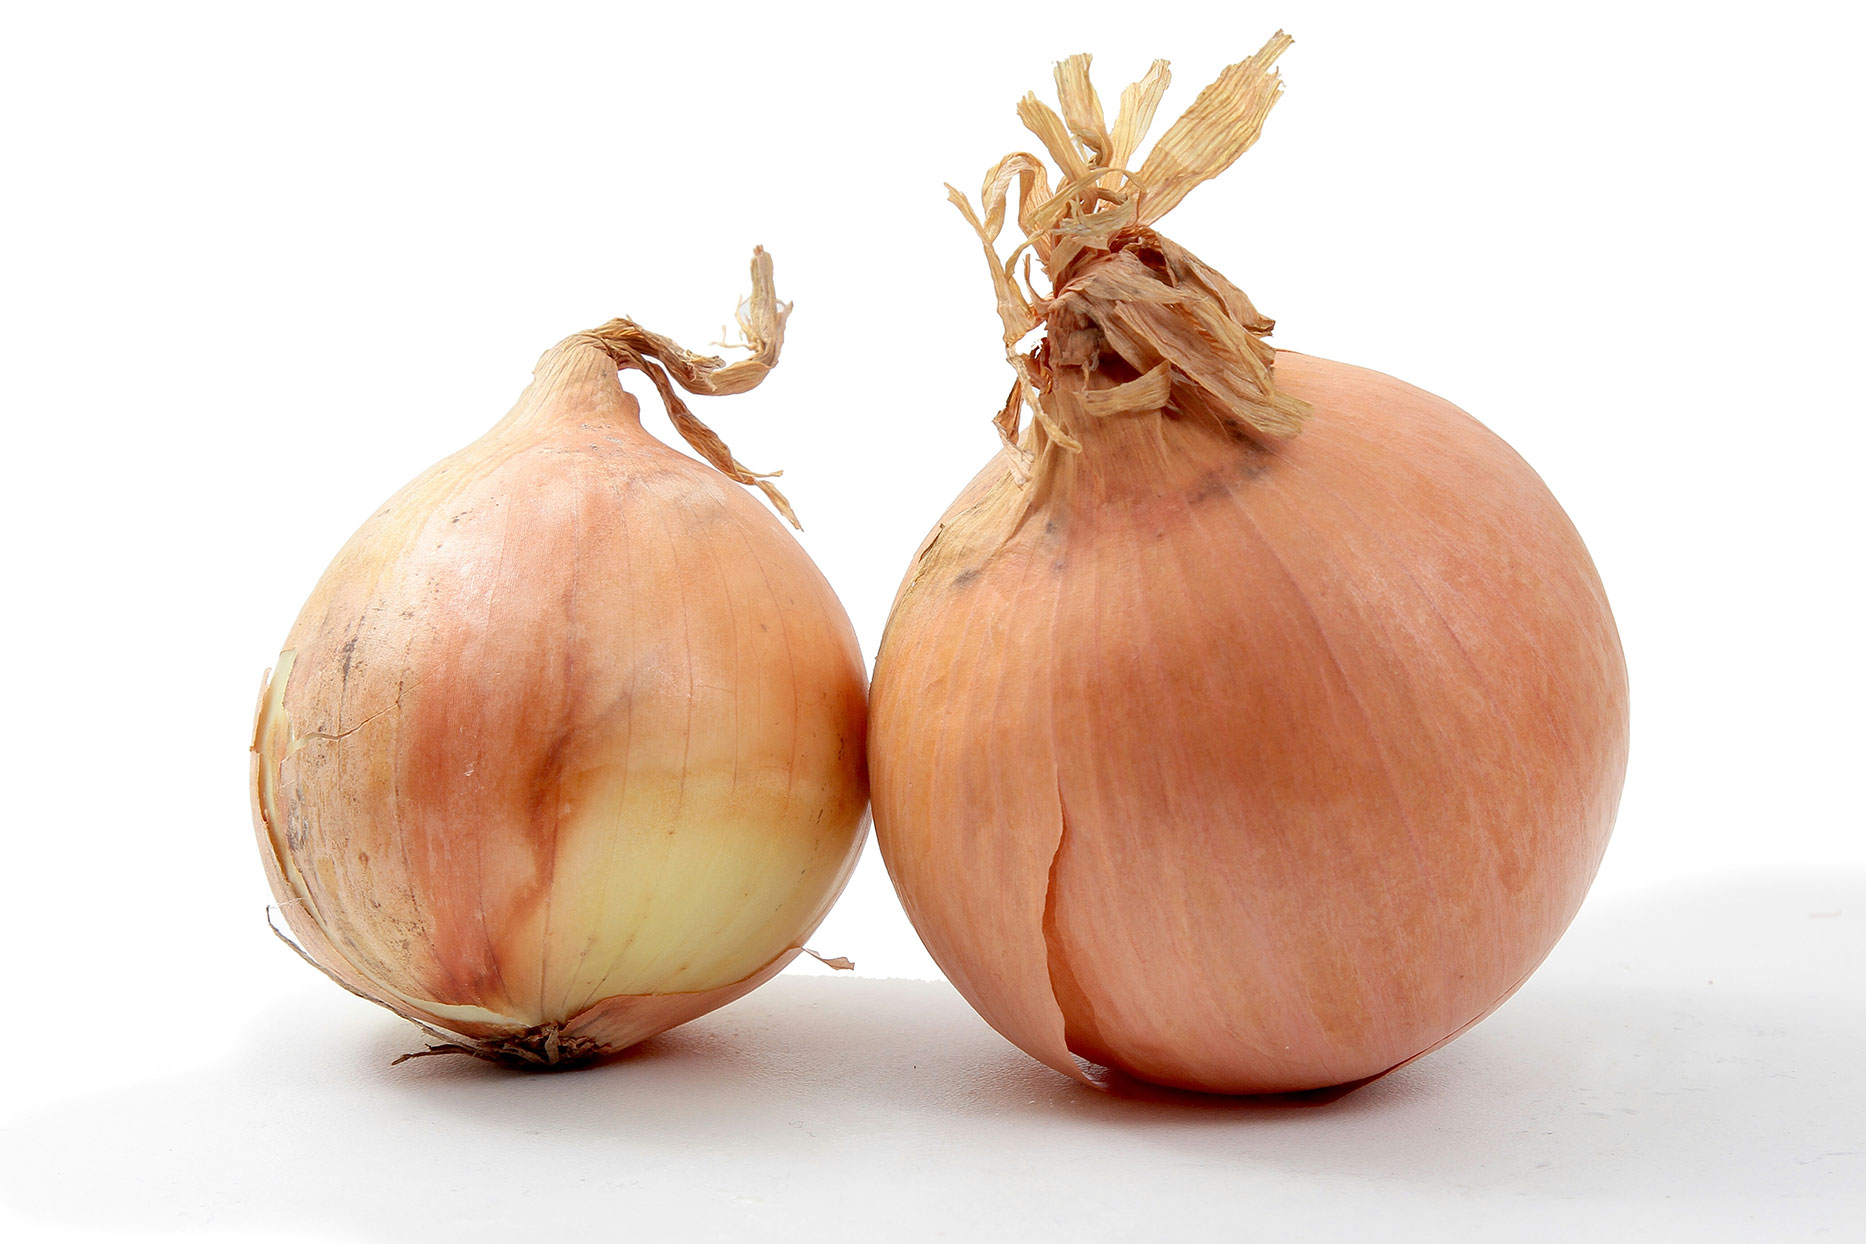 two onions against a white background